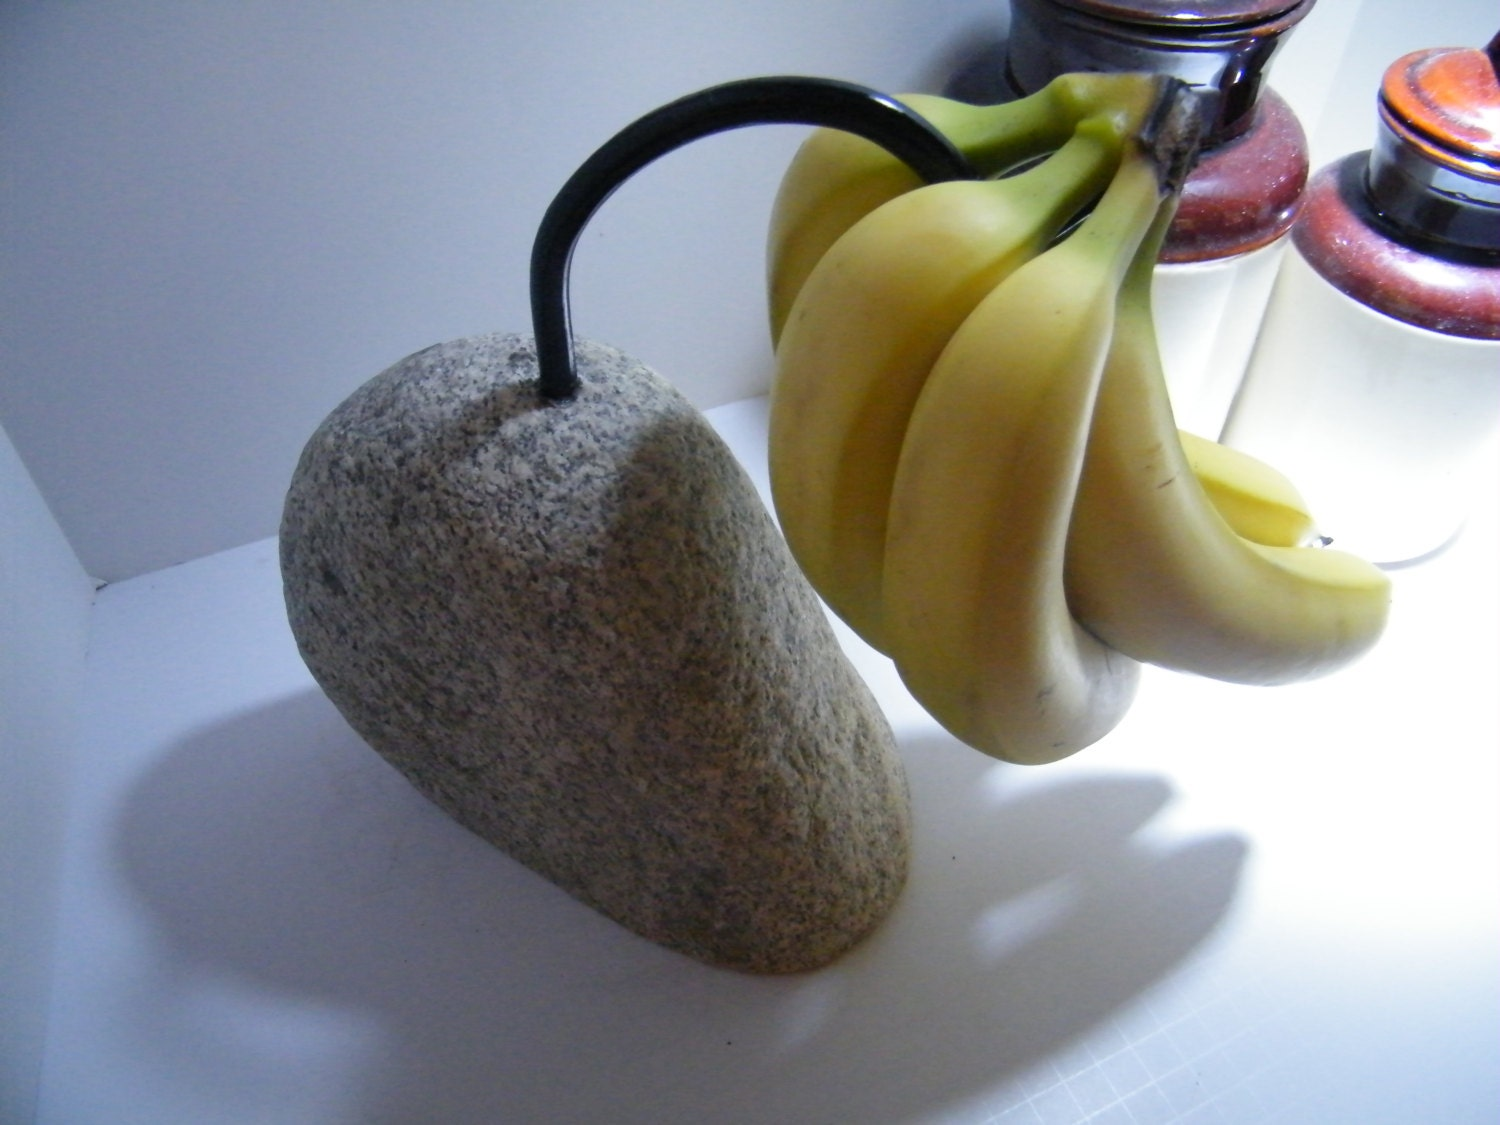 Banana Holder Banana Keeper Stone Banana Hanger